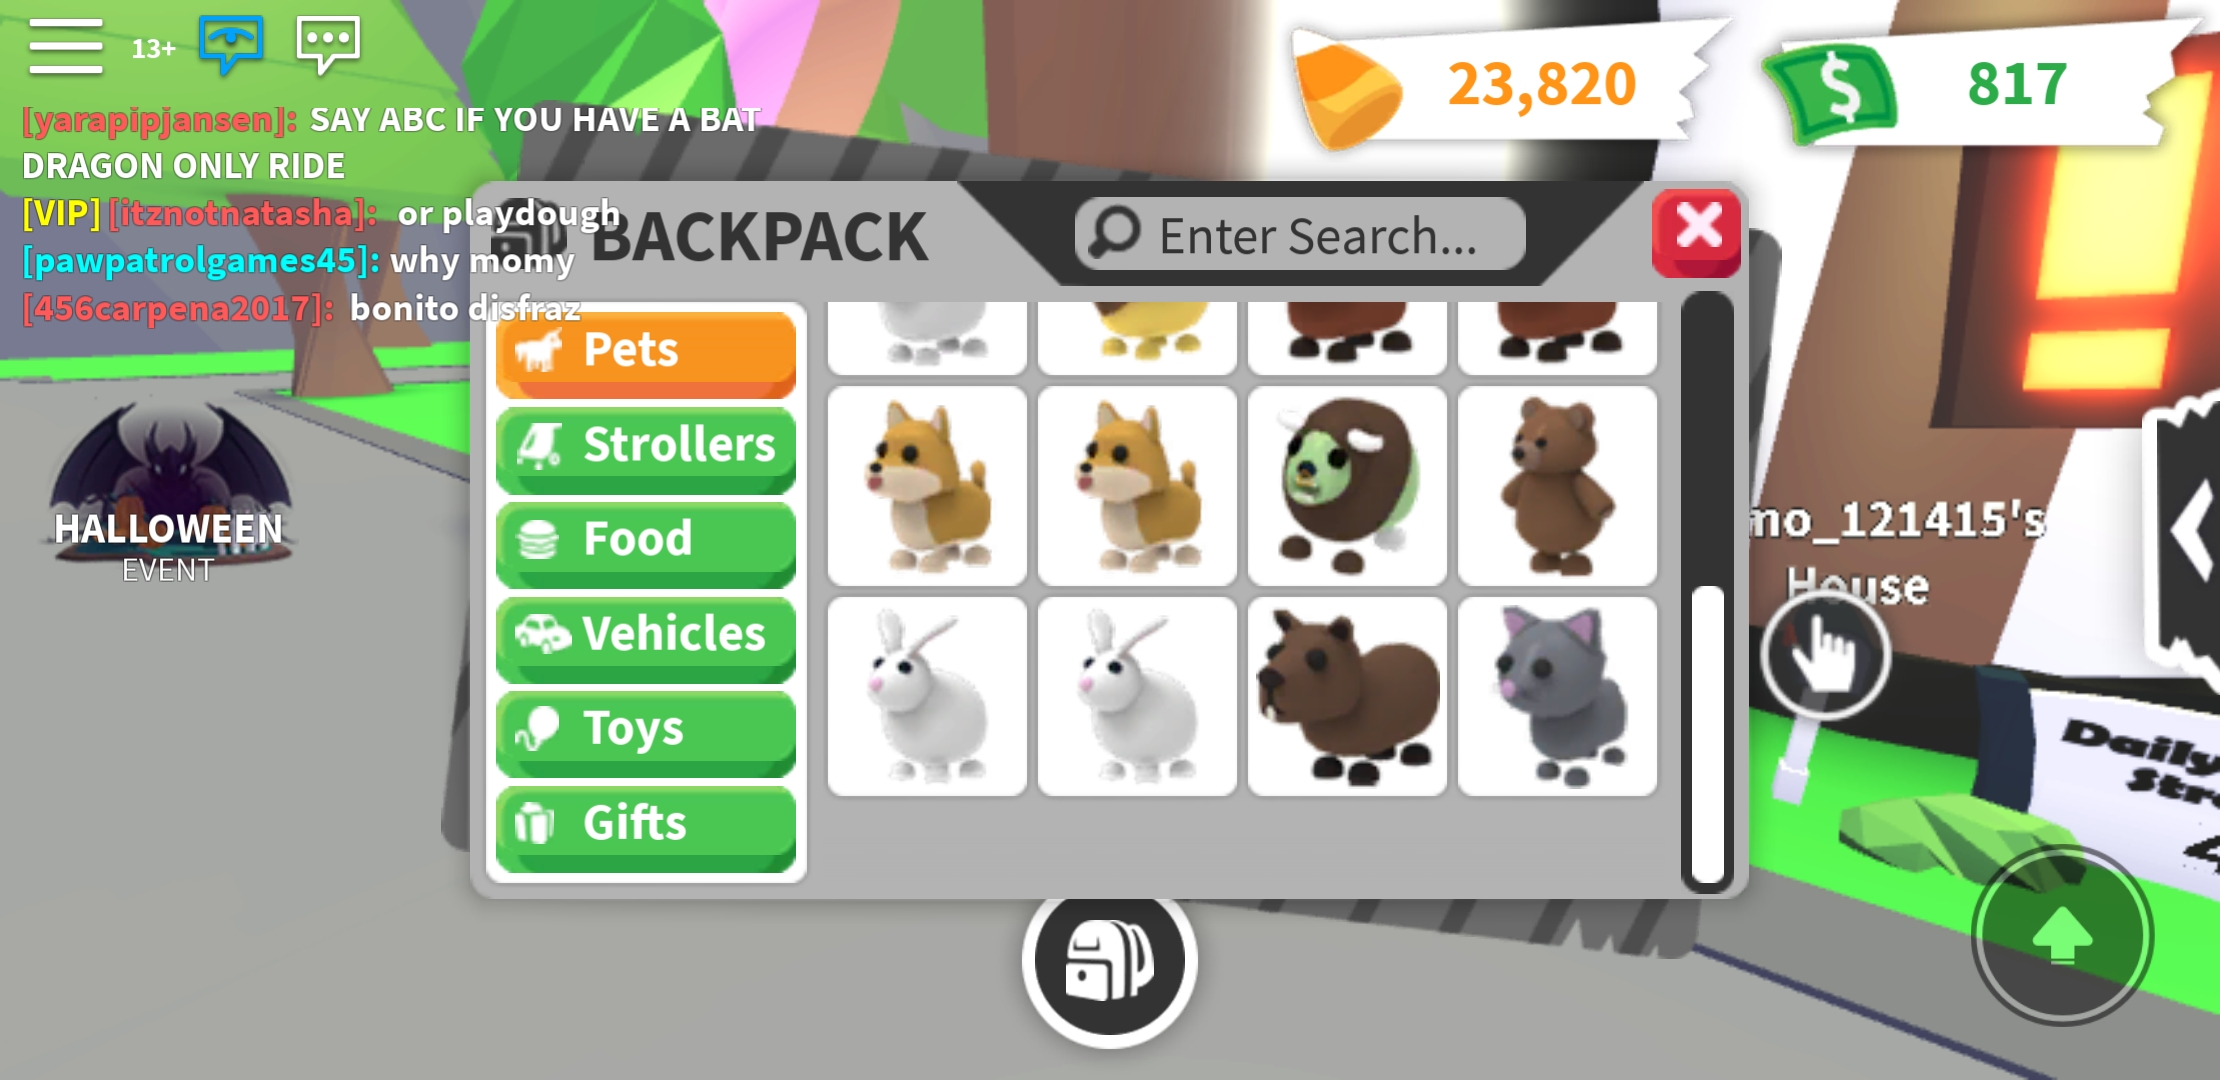 Roblox Game Card Items Fandom Selling Items Pets For Roblox Gift Cards Updated Fandom